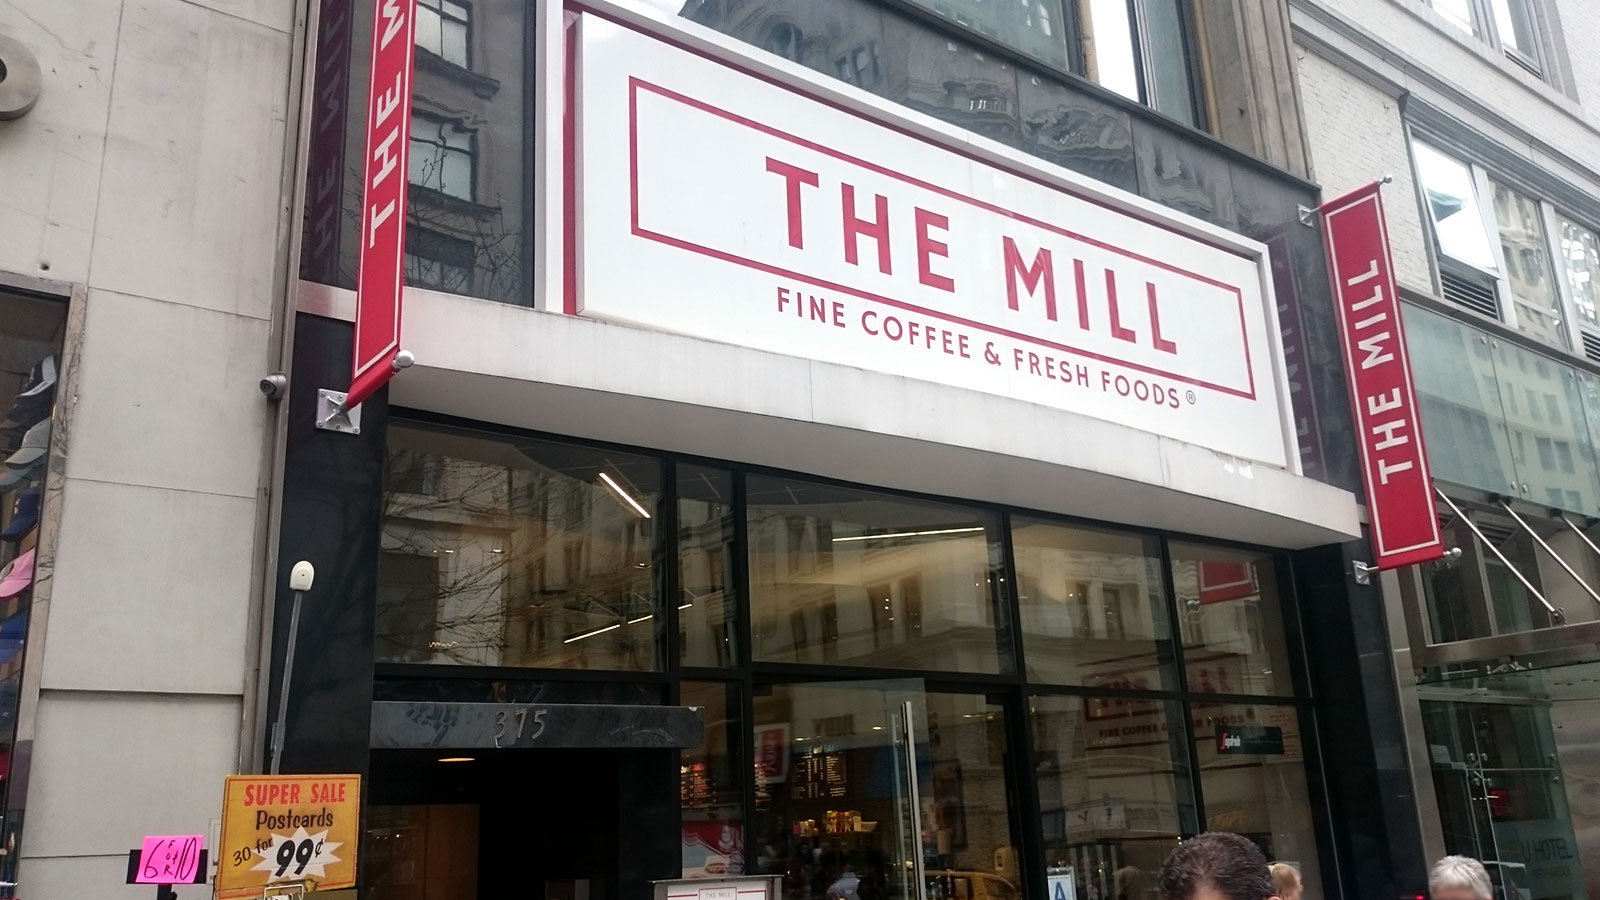 The Mill 375 5th Ave